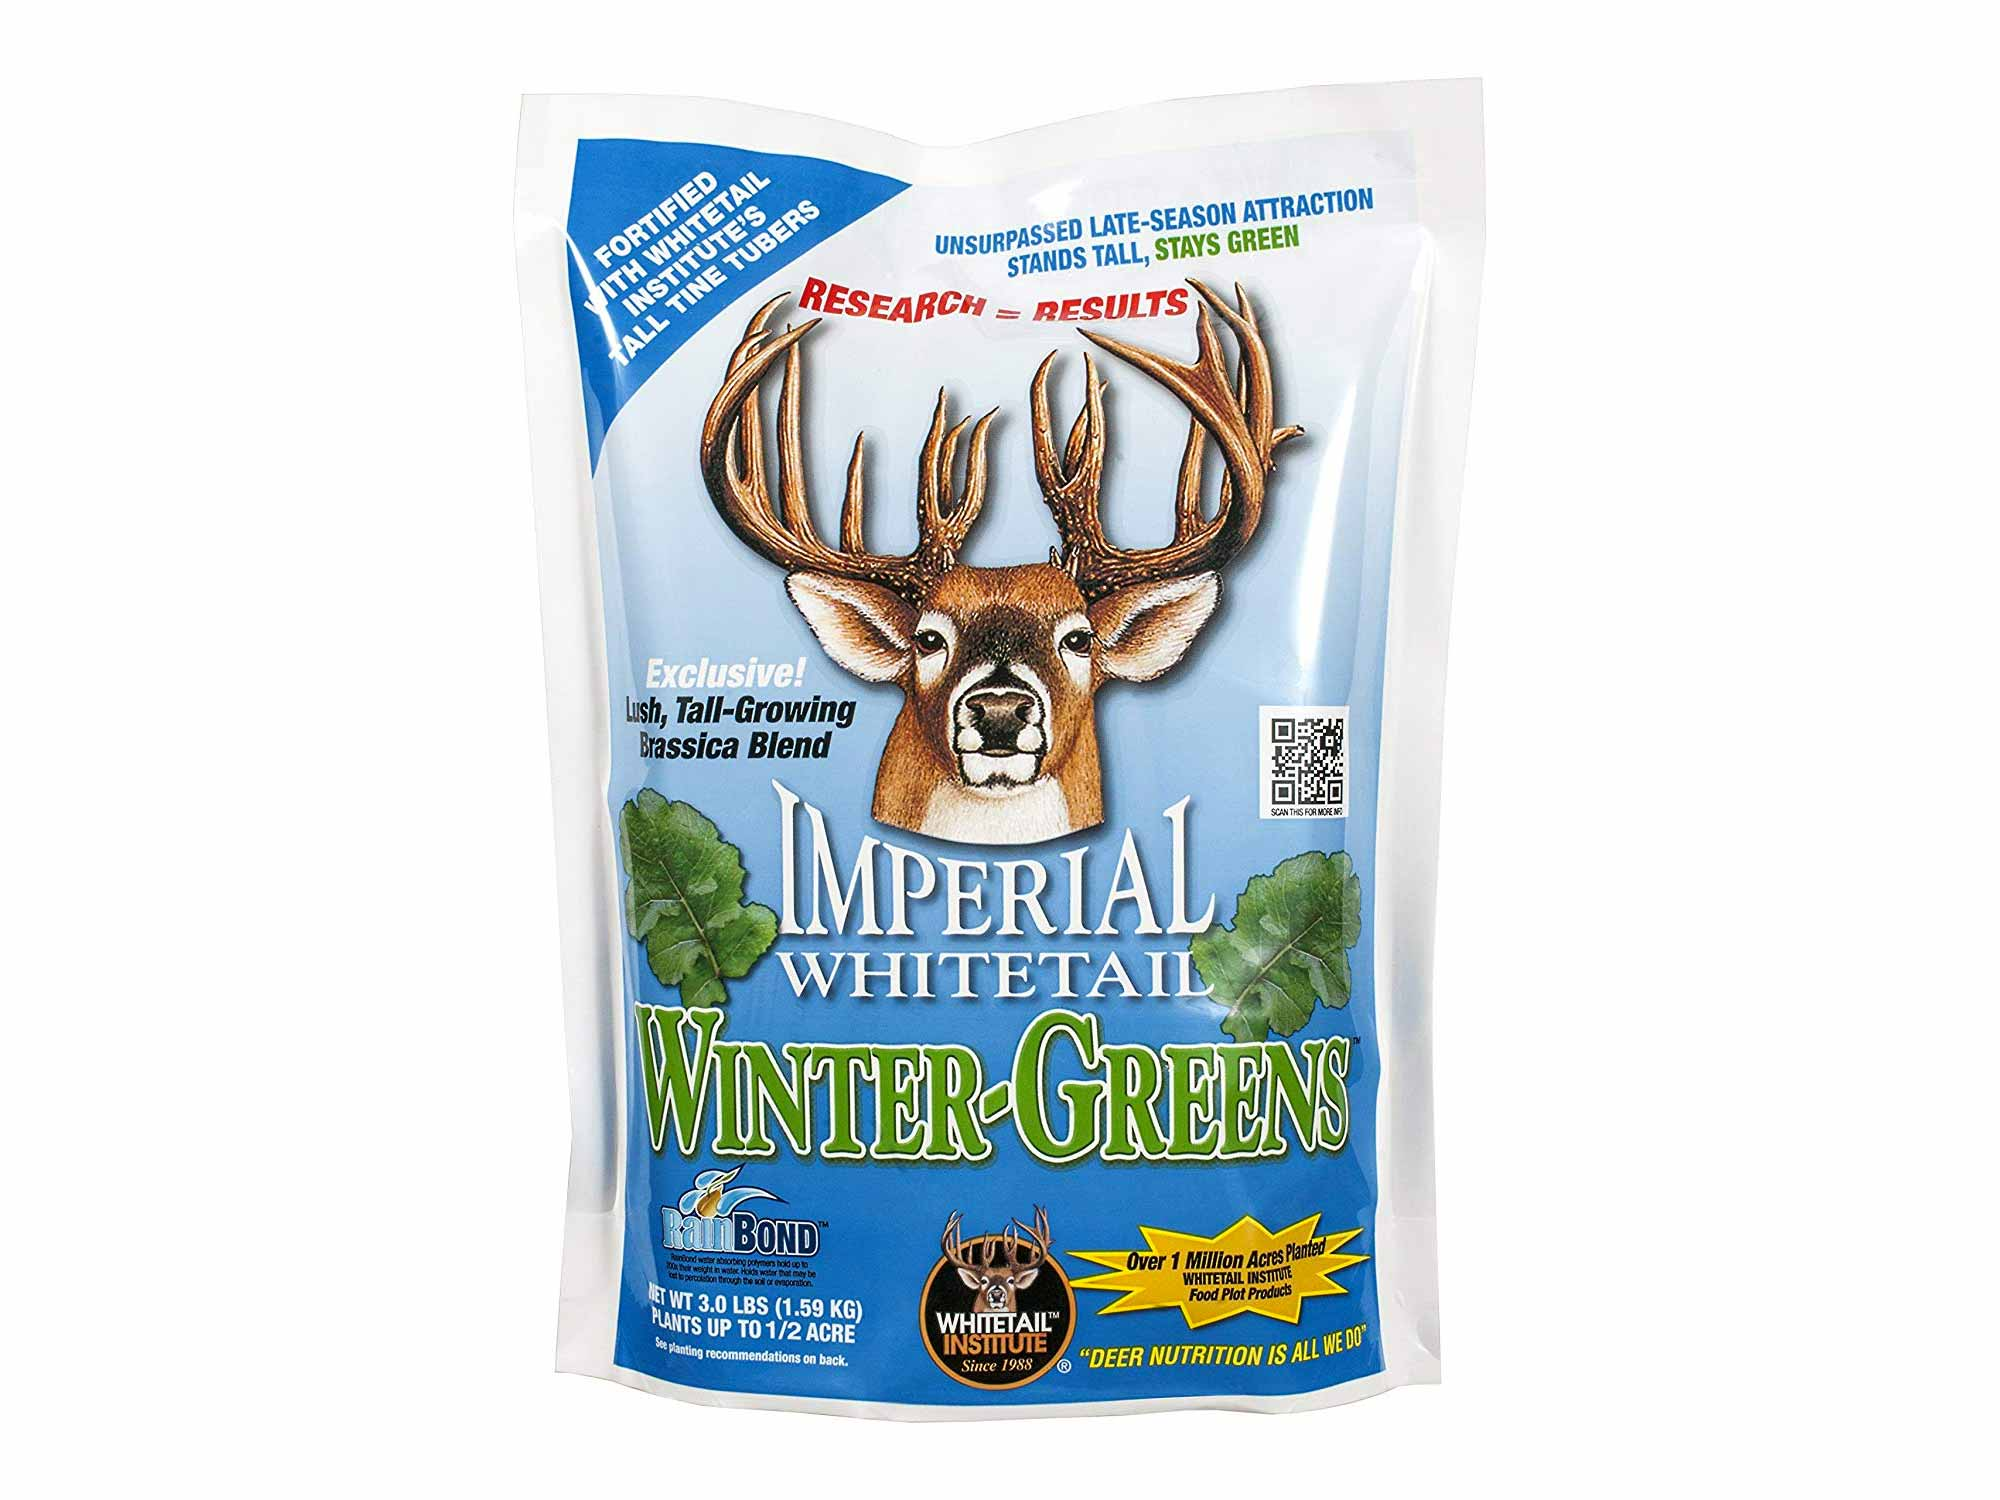 Imperial whitetail deer feed